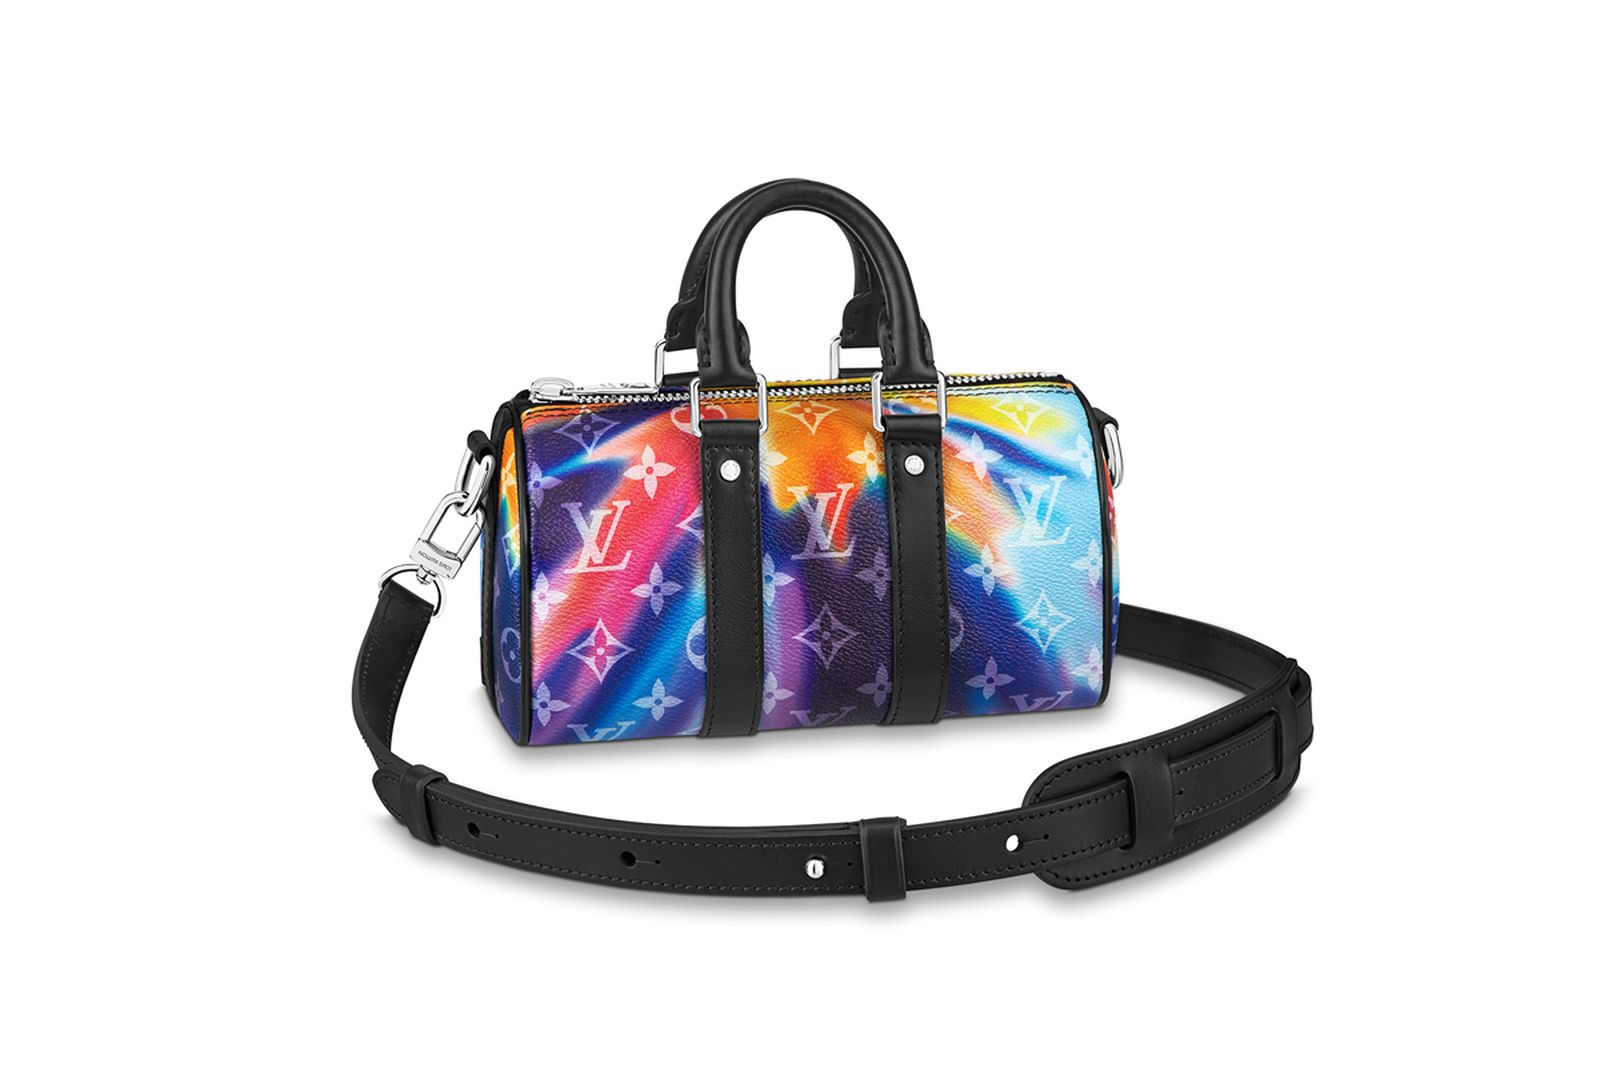 louis vuitton fall 2021 collection campaign product (51)